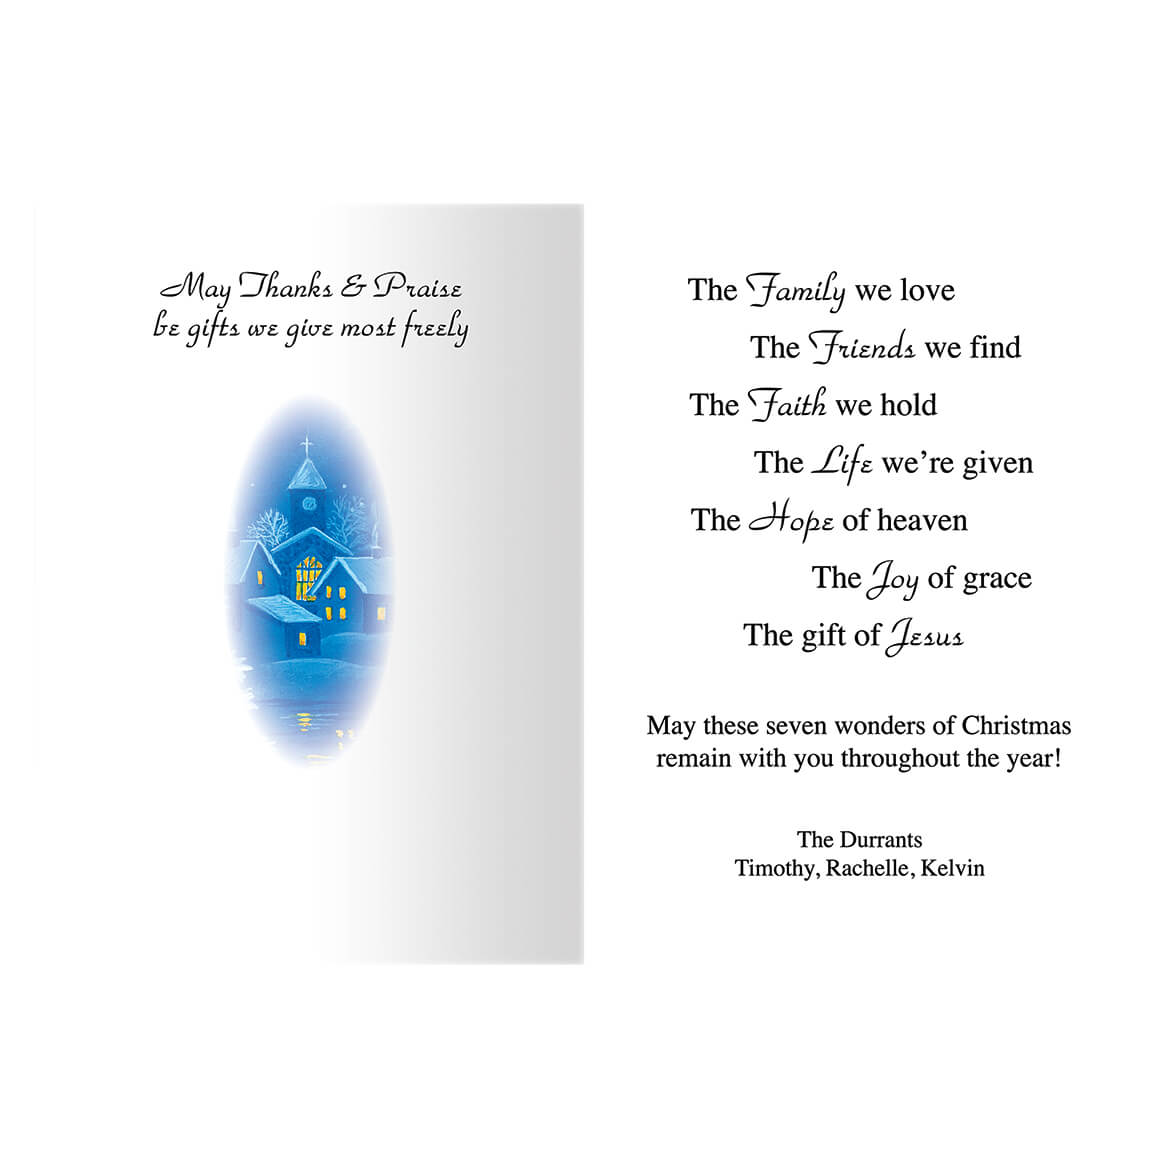 Personalized Gifts We Give Christmas Card Set of 20 - Walter Drake